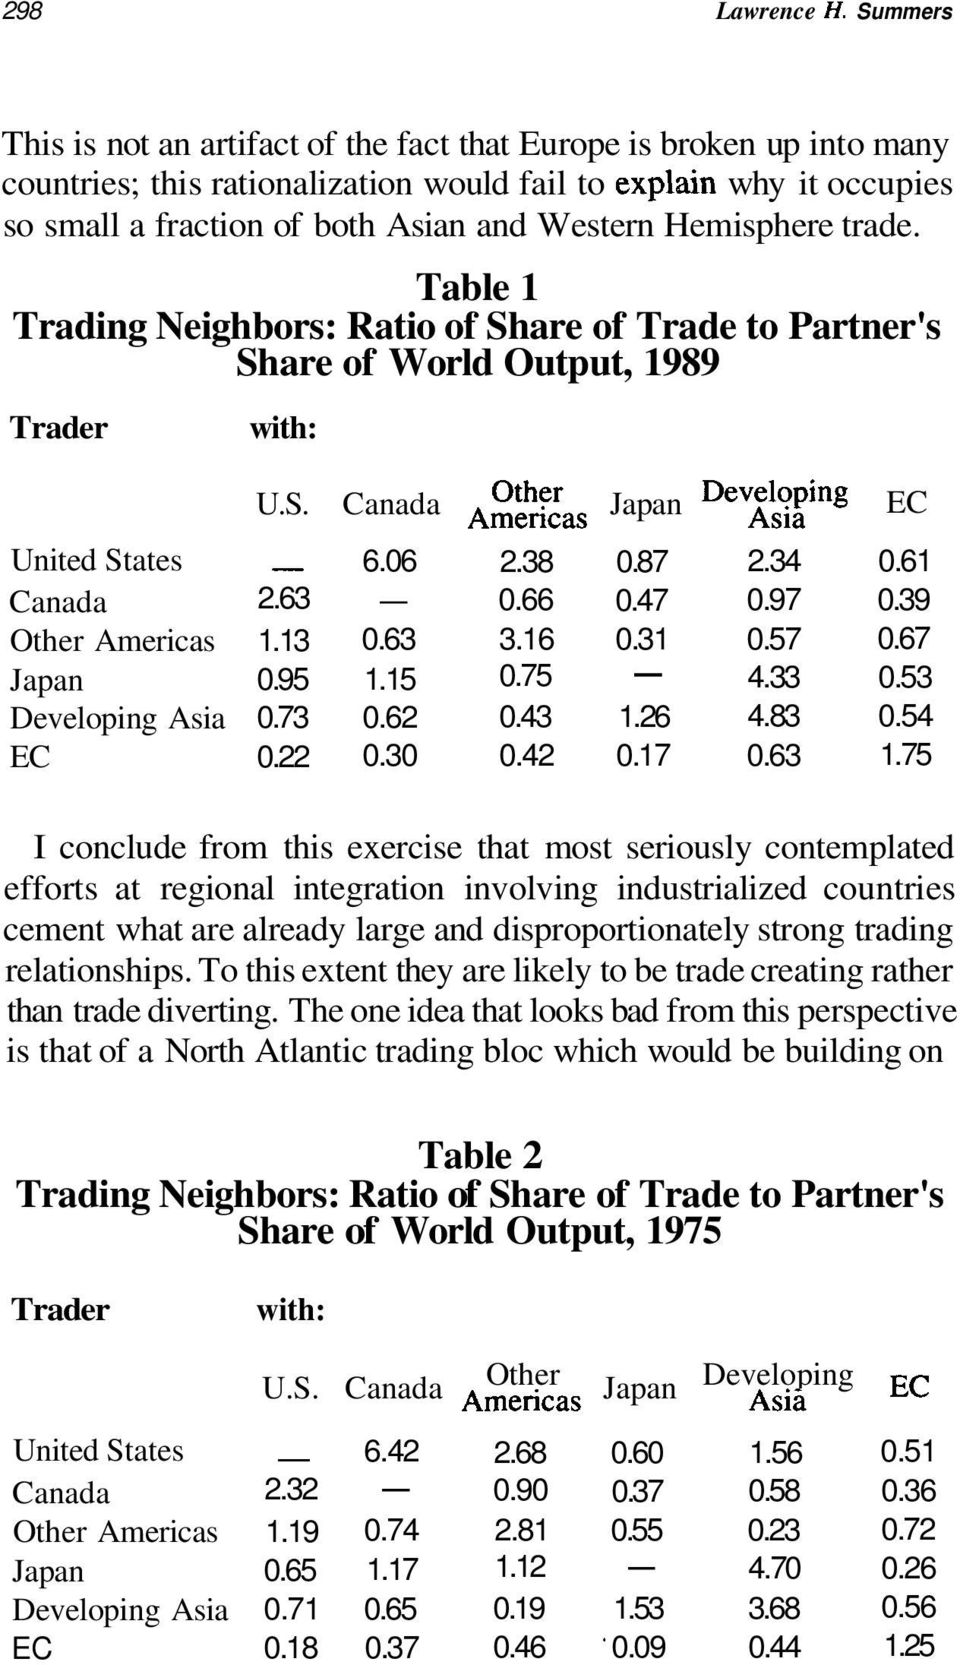 Hemisphere trade. Table 1 Trading Neighbors: Ratio of Share of Trade to Partner's Share of World Output, 1989 Trader with: U.S. Canada A ~ ~ Japan ~ ~ Devi$$ng a s United States - 6.06 2.38 0.87 2.